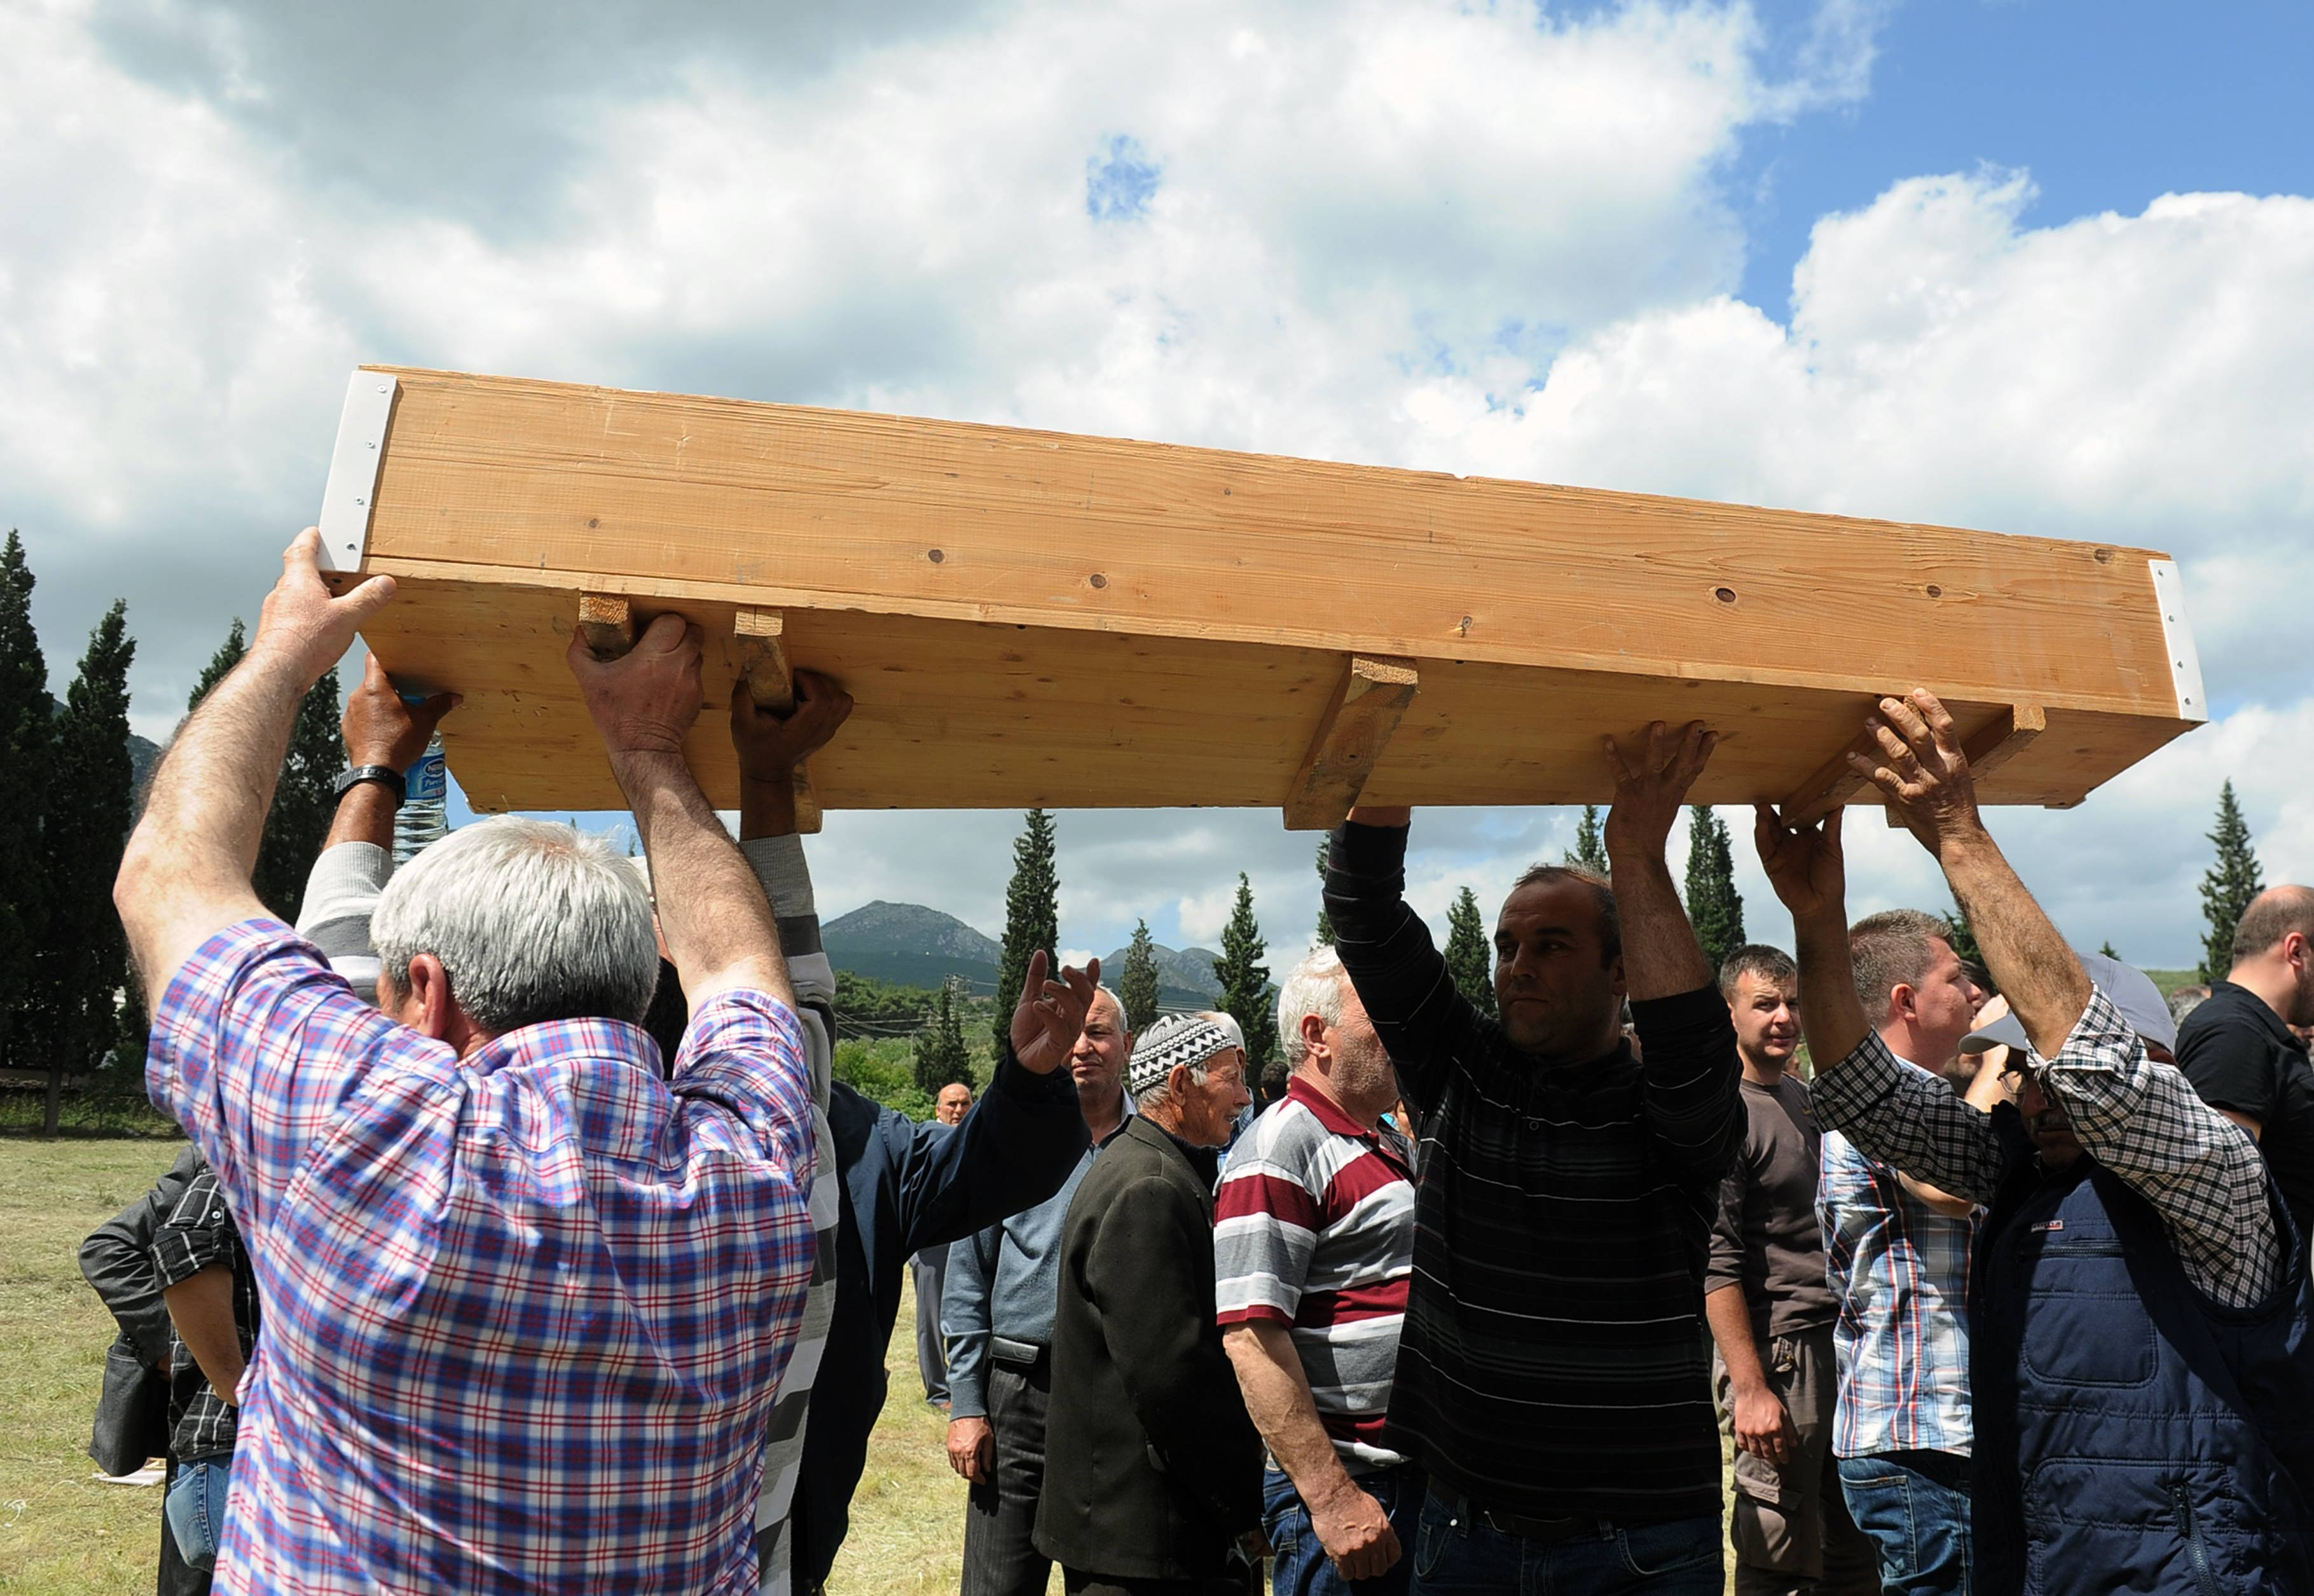 People carry the simple wooden coffin of a mine accident victim for burial in Soma, Turkey, Thursday. An explosion and fire at a coal mine in Soma, some 155 miles south of Istanbul, killed hundreds of workers, authorities said, in one of the worst mining disasters in Turkish history.